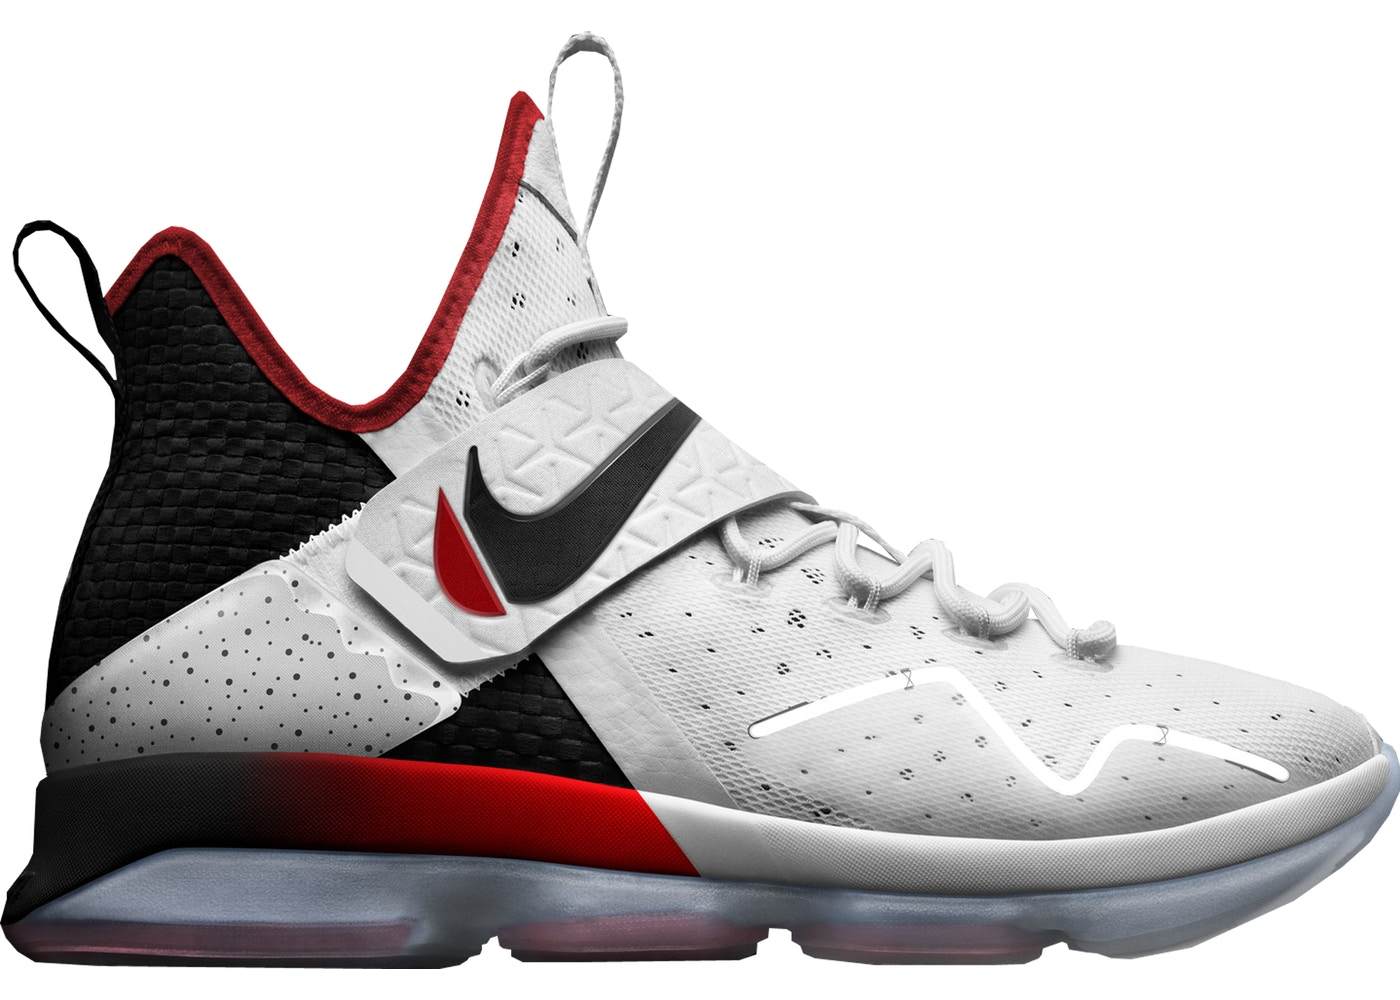 check out 14d4e 683fa LeBron 14 Flip the Switch